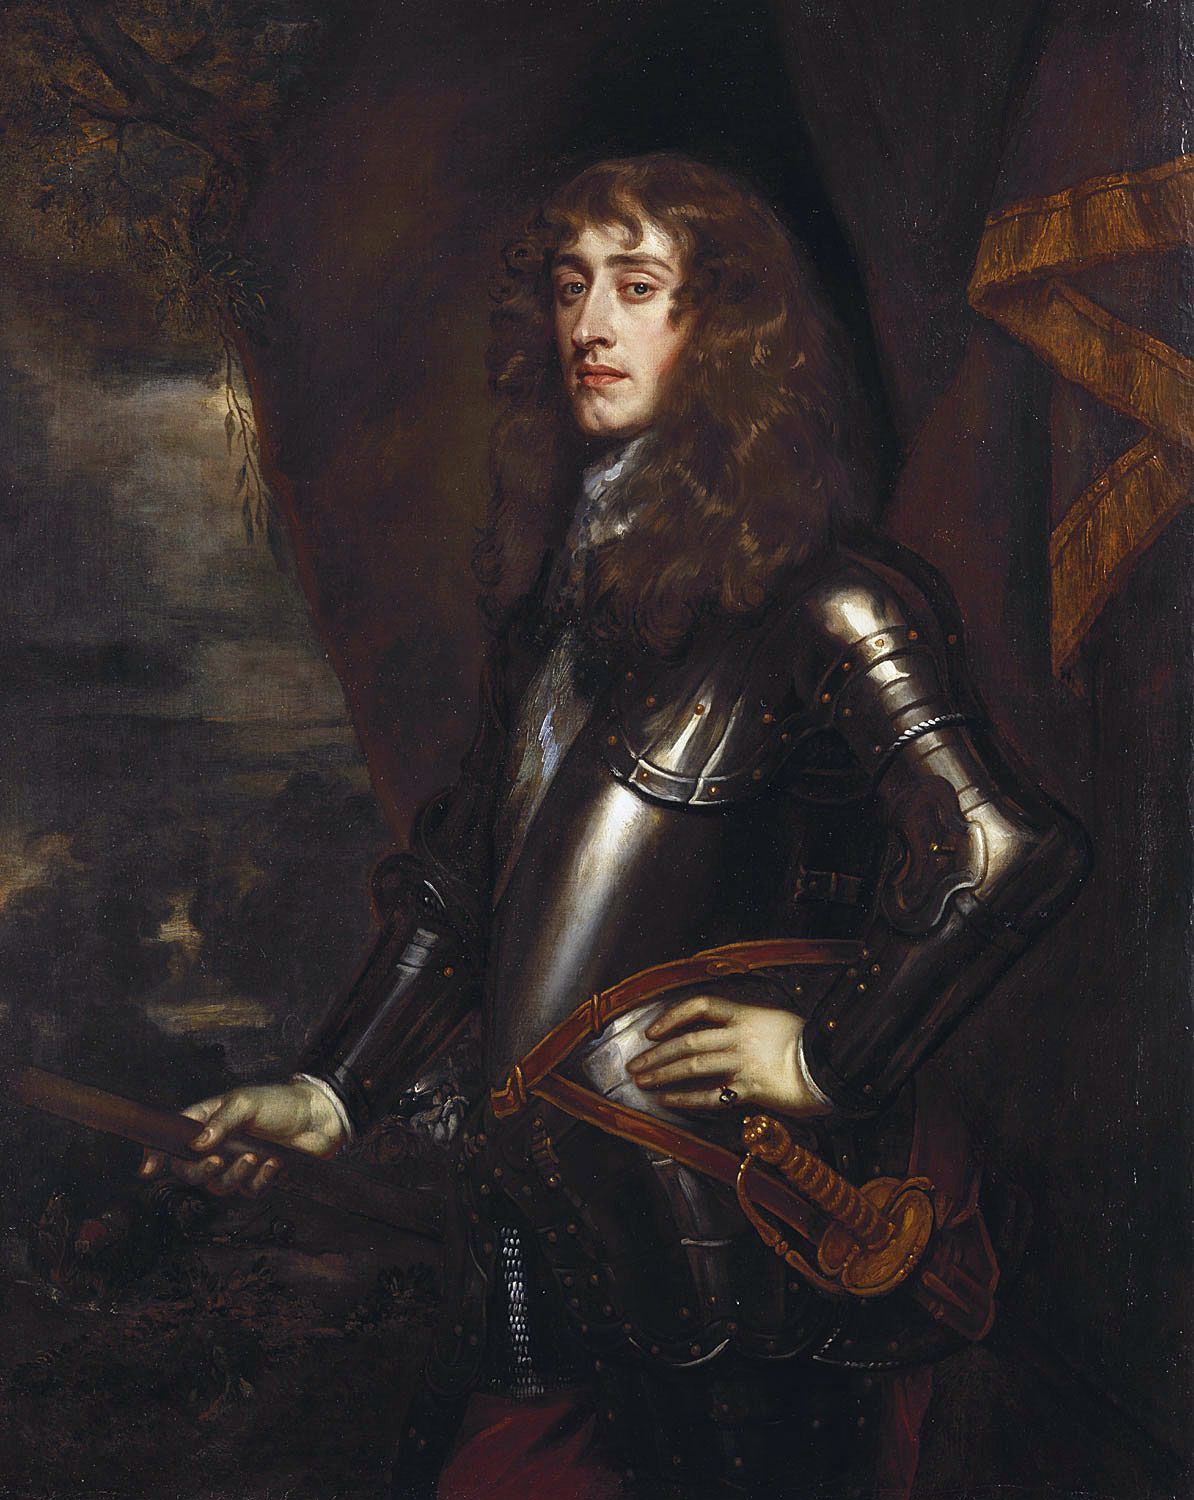 James II from Wikimedia Commons